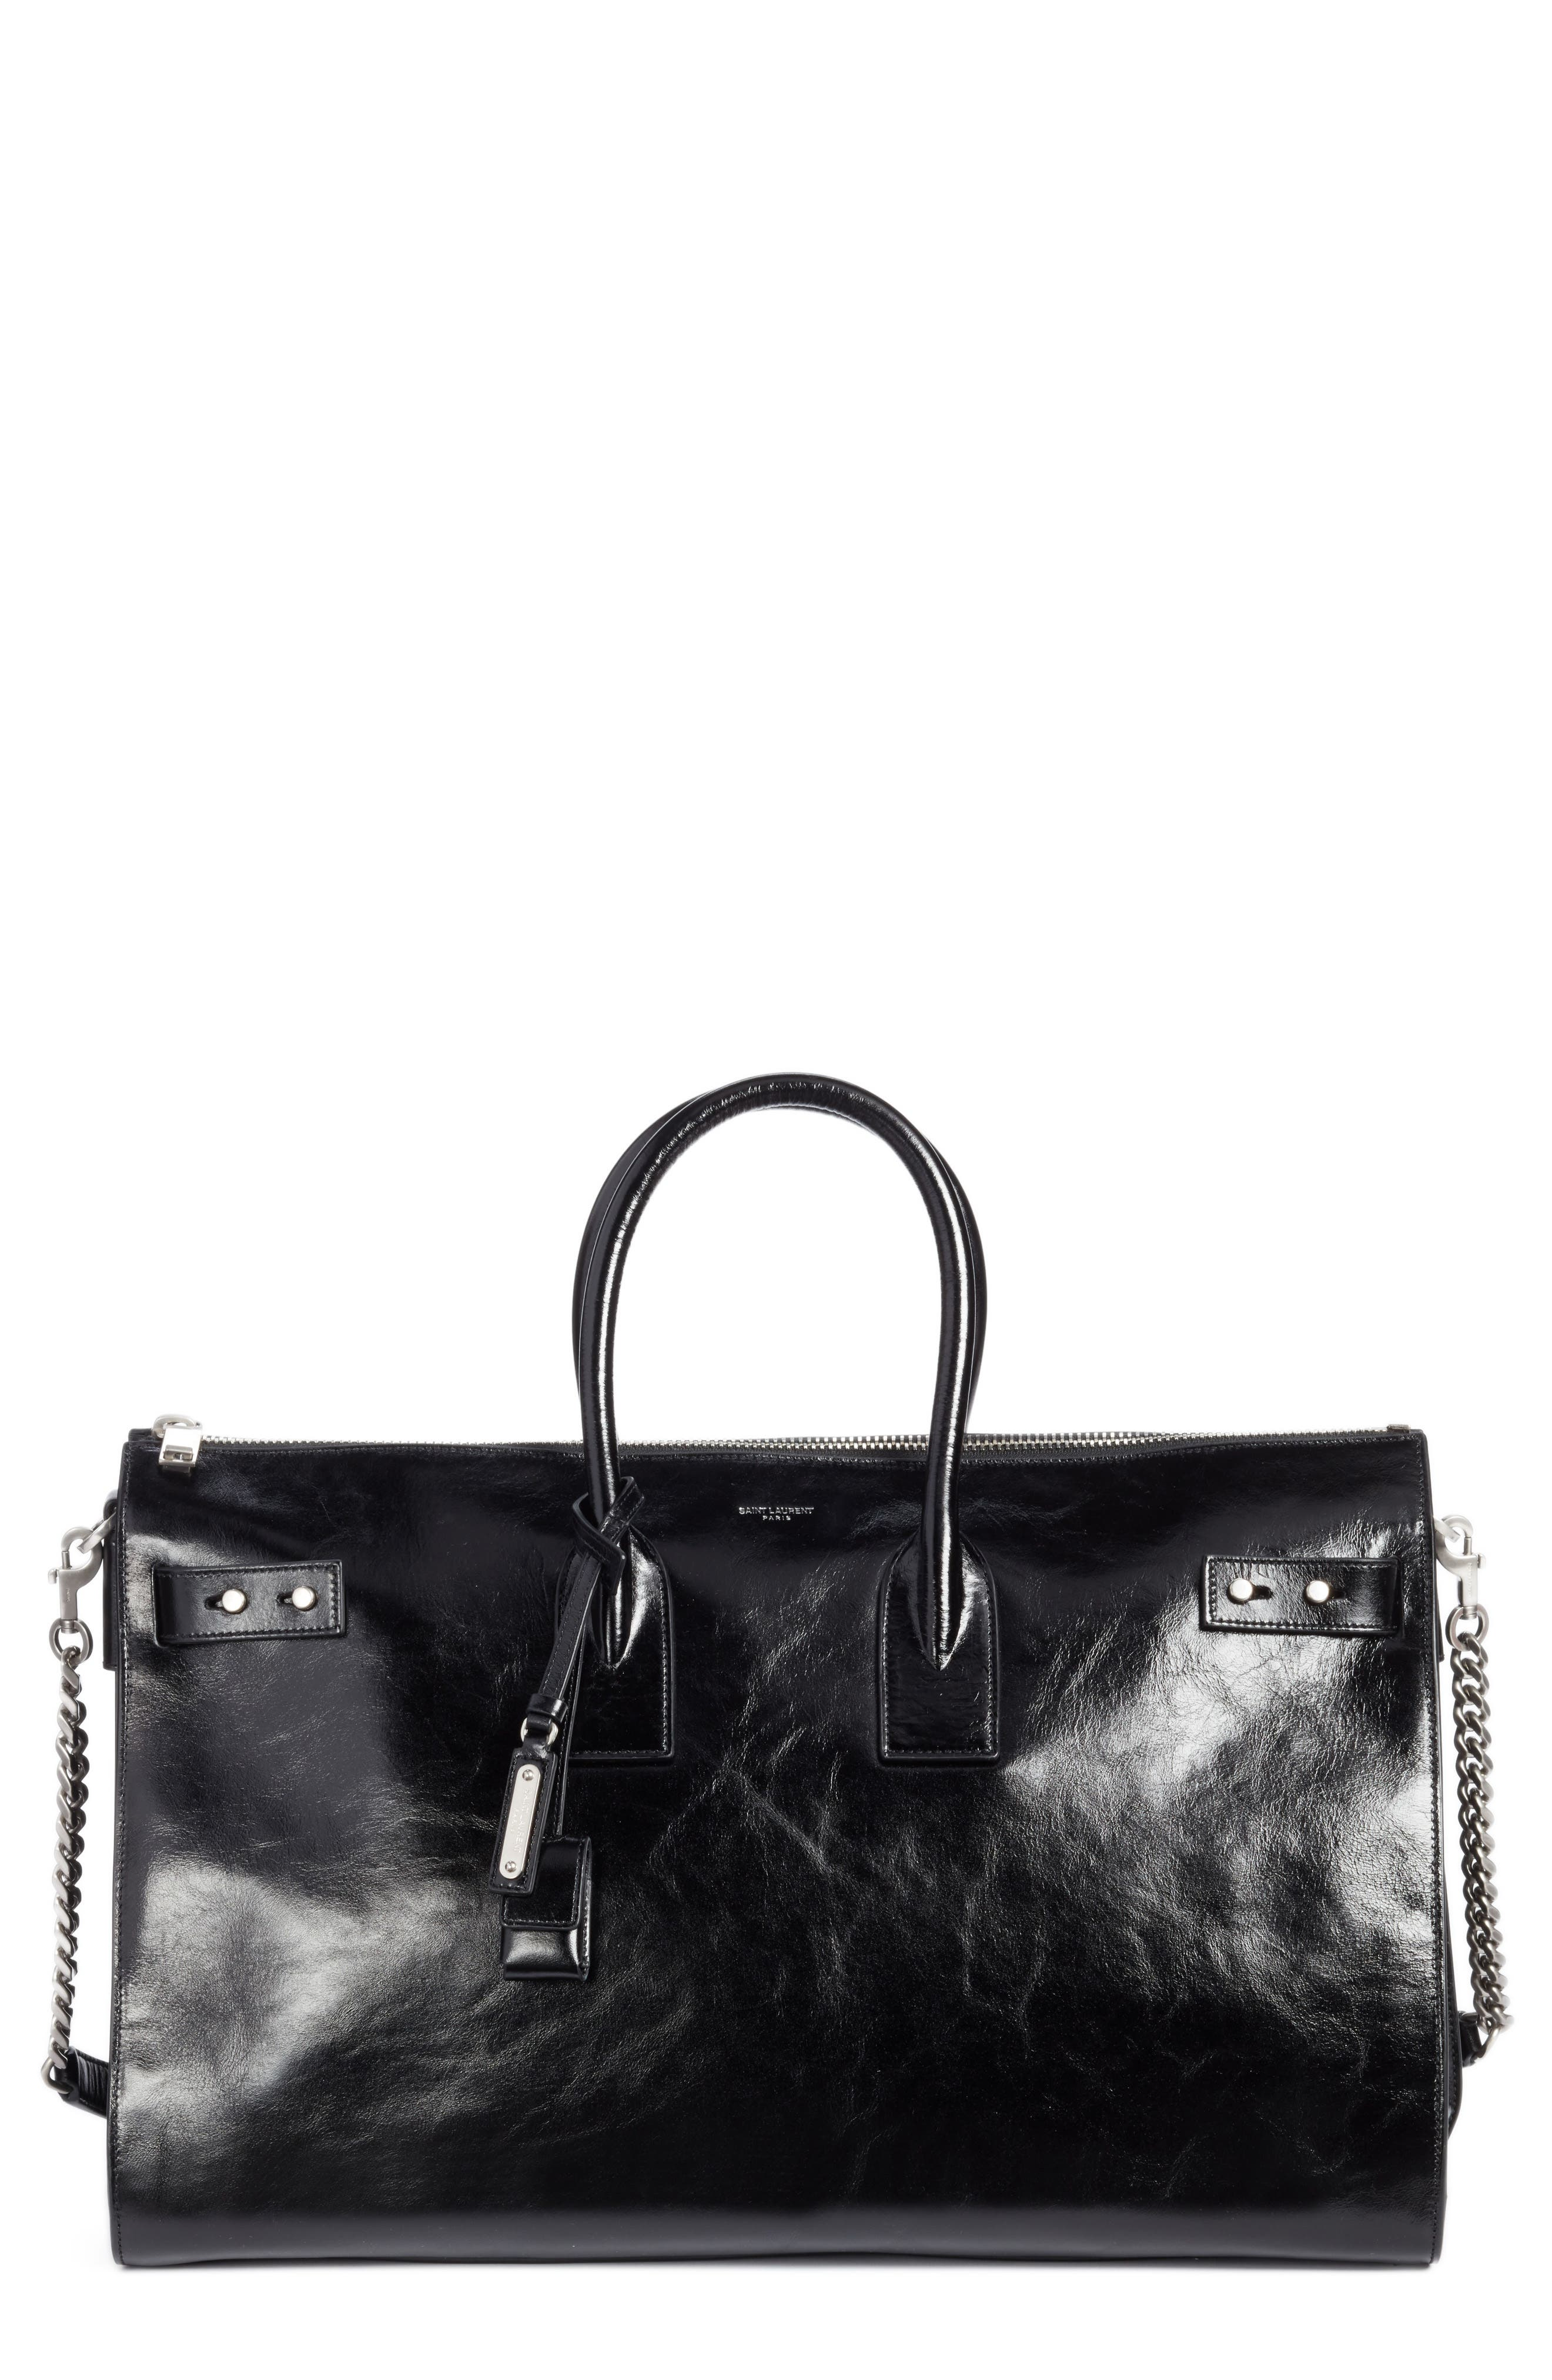 Alternate Image 1 Selected - Saint Laurent Sac de Jour Glacé Moroder Leather Duffel